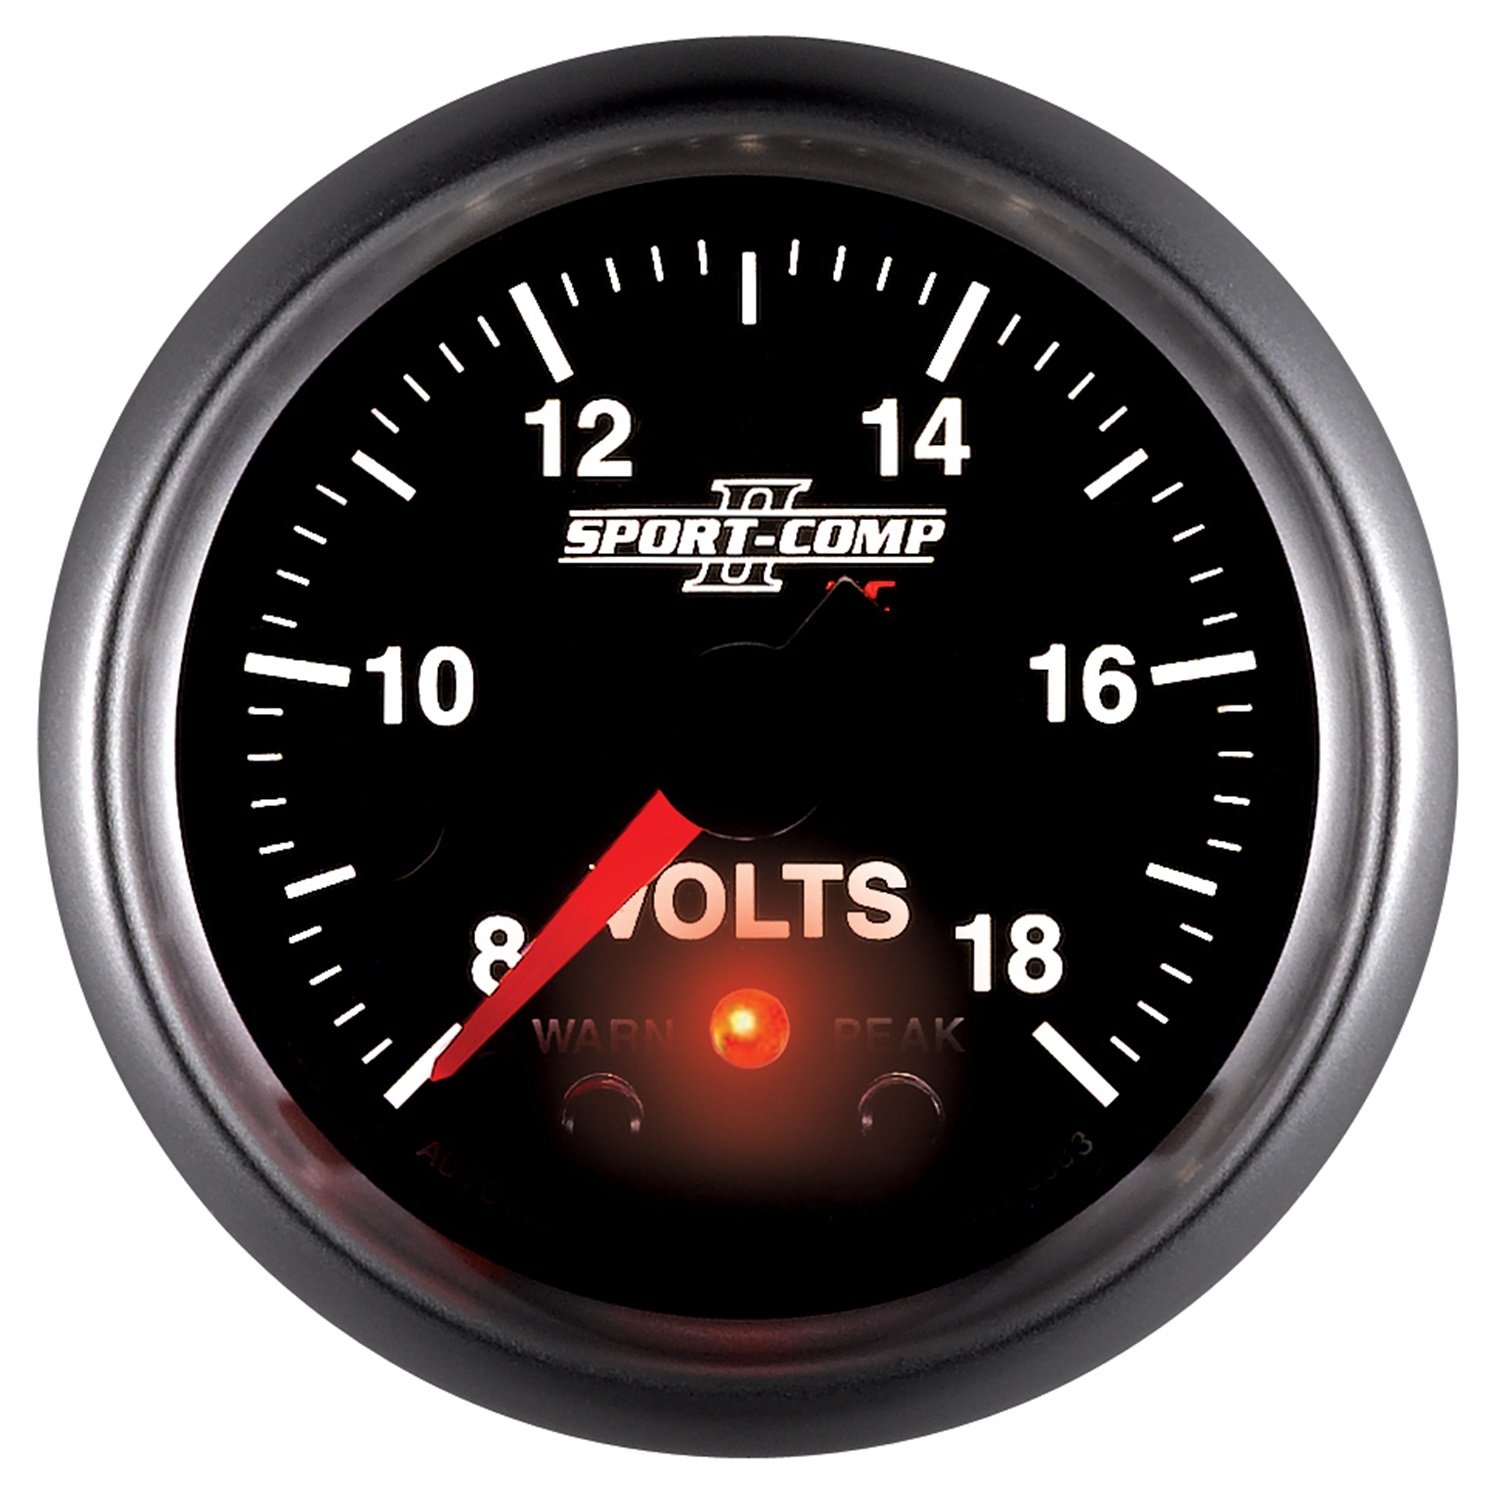 Auto Meter 3683 Sport-Comp II 2-1//16 8-18V Full Sweep Electric Voltmeter Gauge